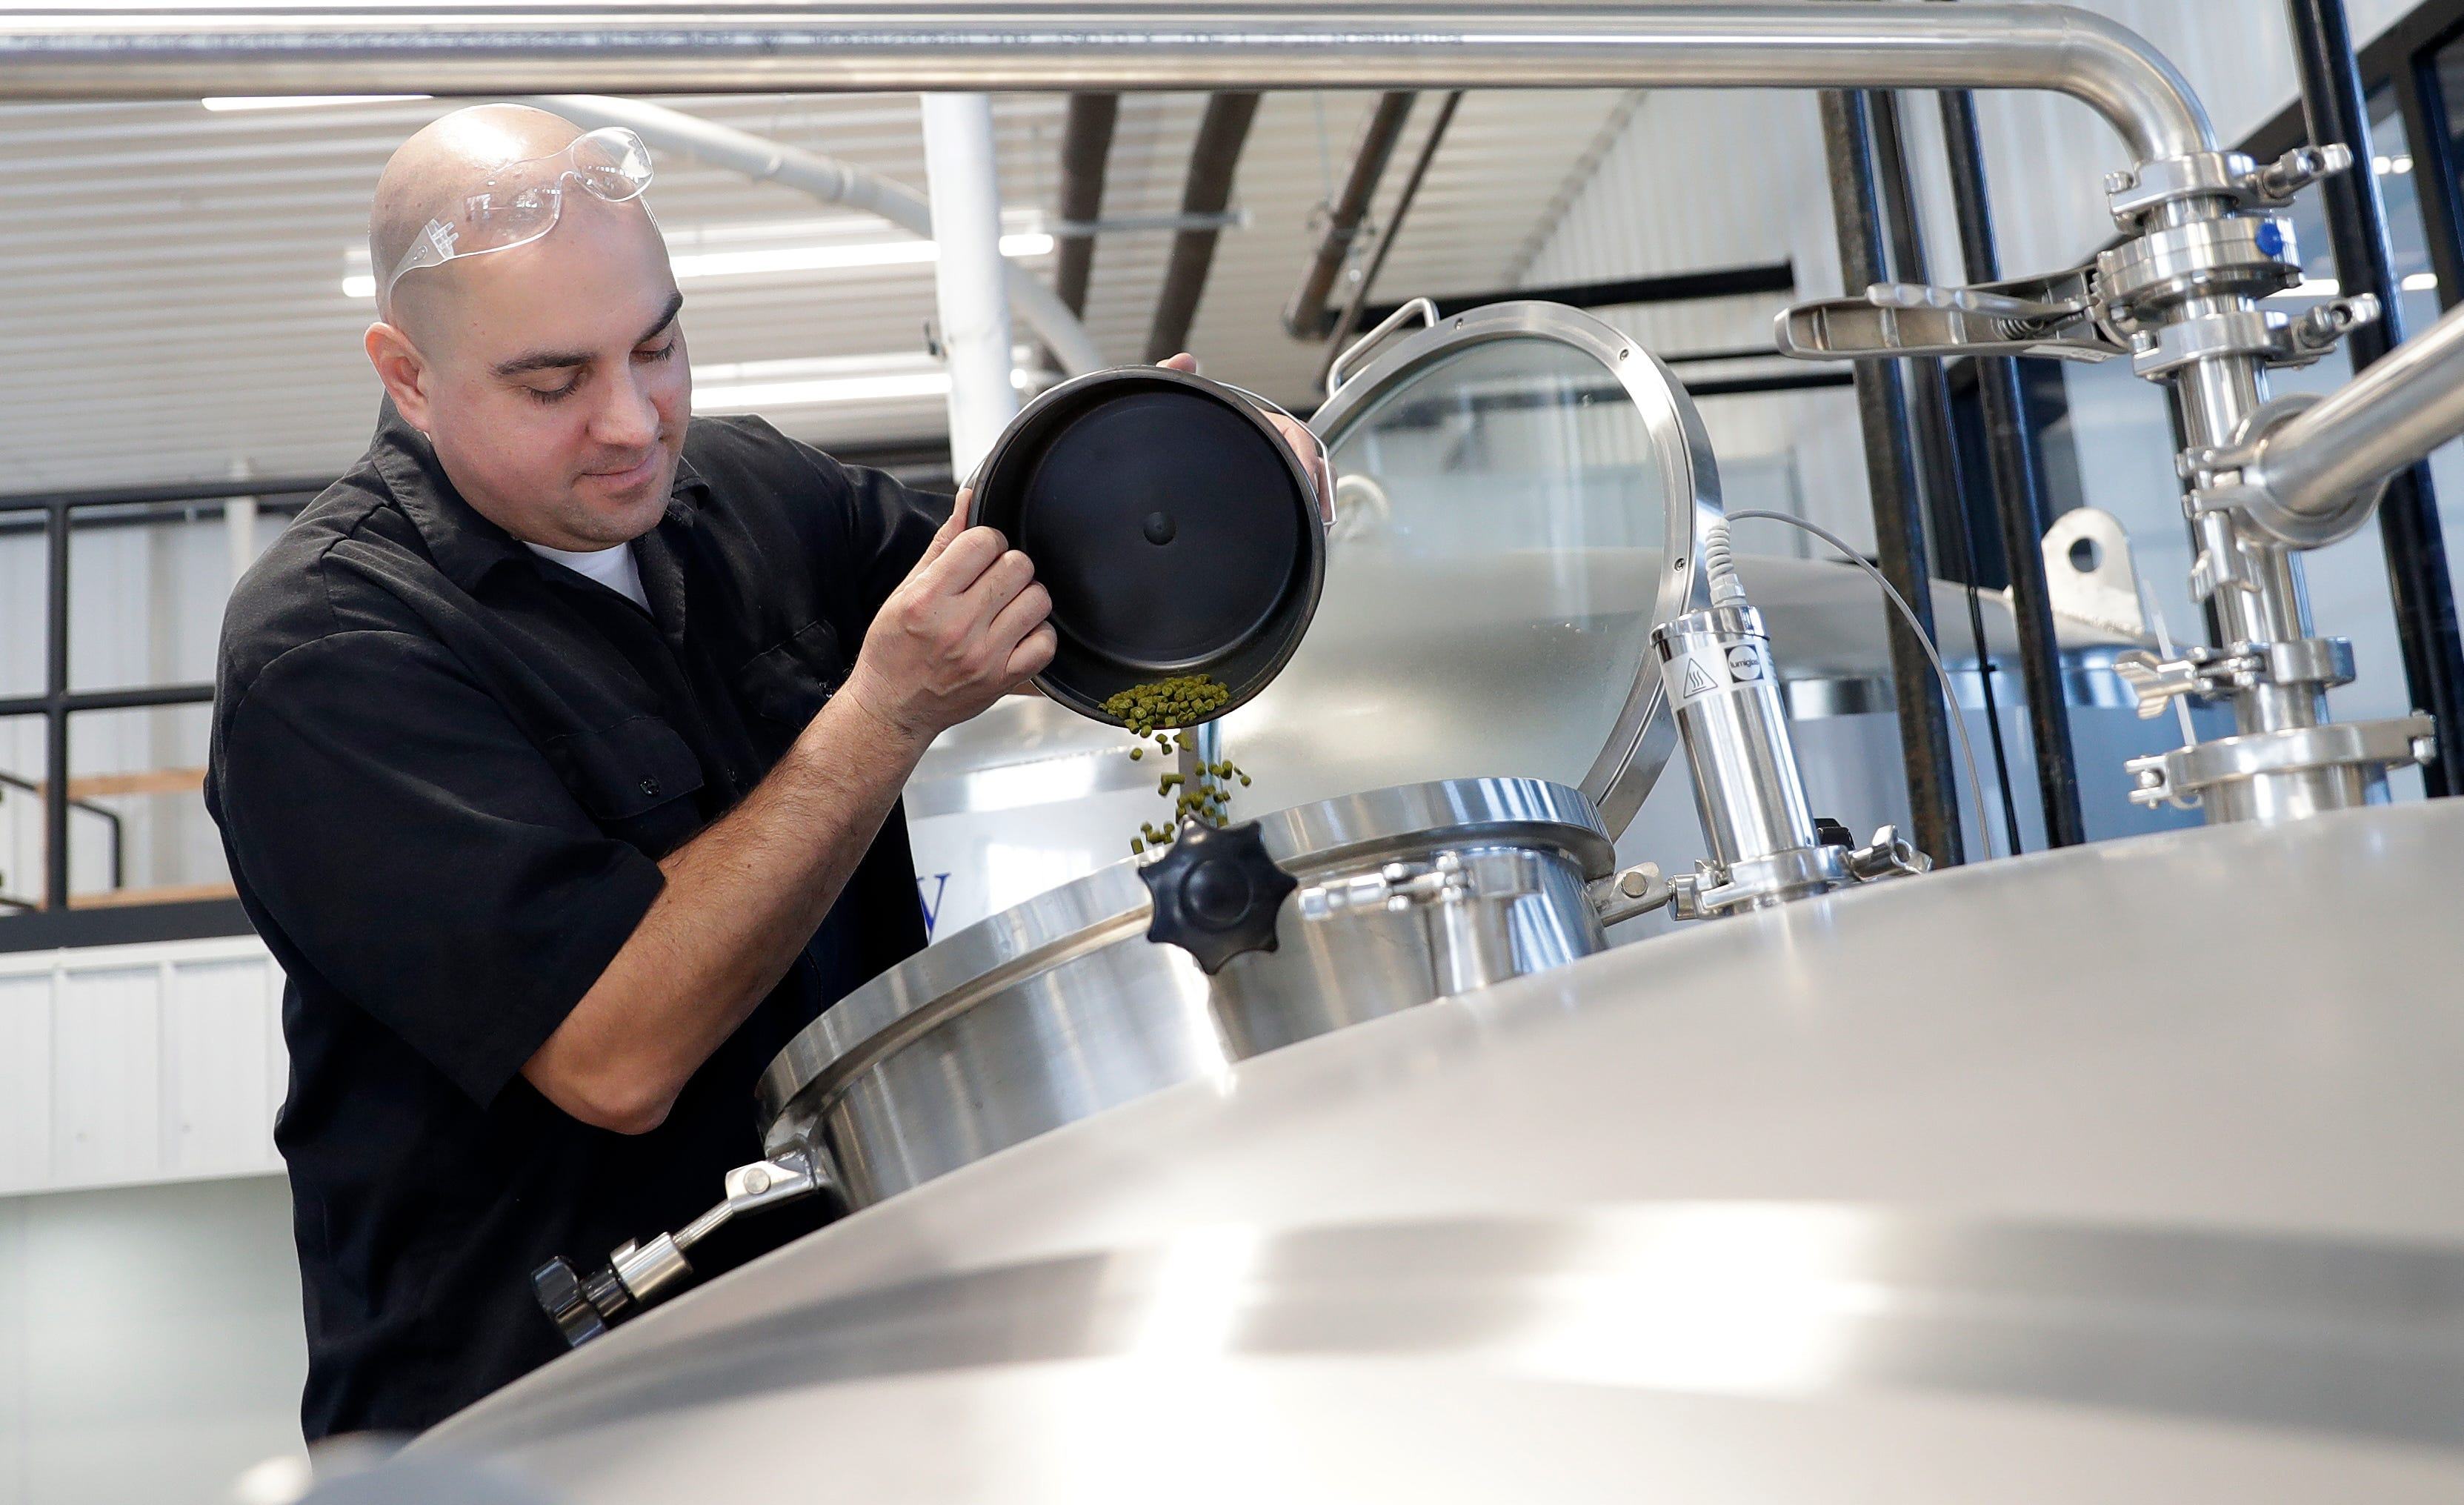 David Malcolm, co-owner of Zambaldi Beer, pours hops into a brewing tank while making his first batch of beer on Feb. 14 at the newly opened Allouez brewery and taproom.